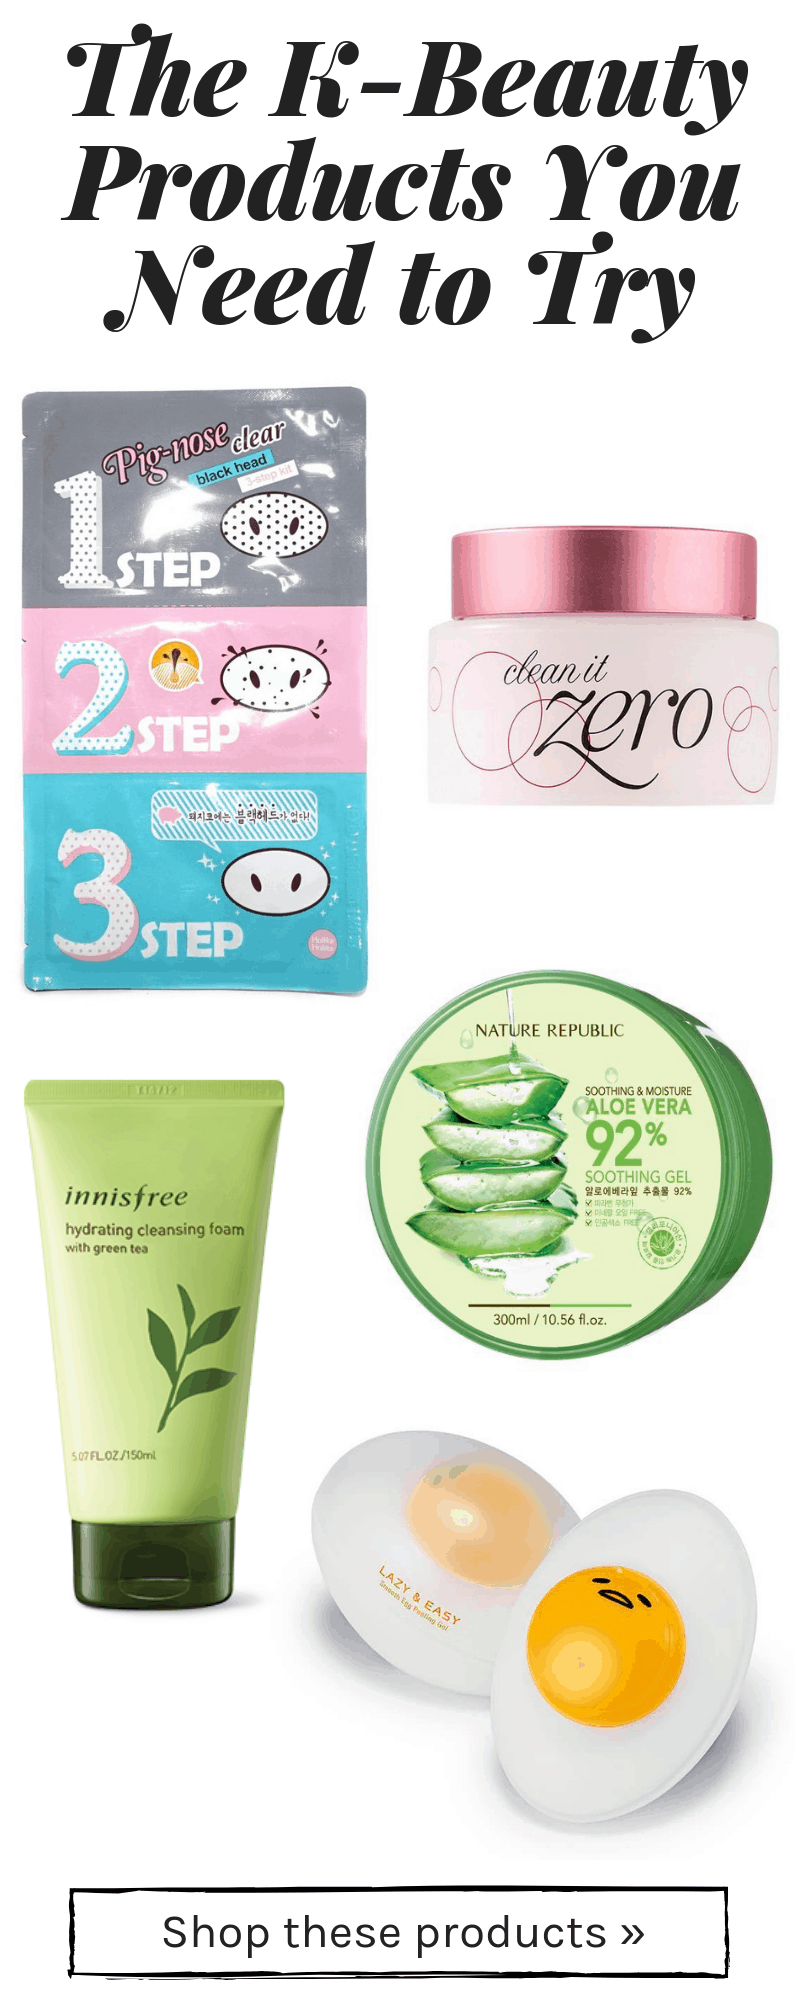 5 Affordable Korean Skincare Products You Need to Try - College Fashion